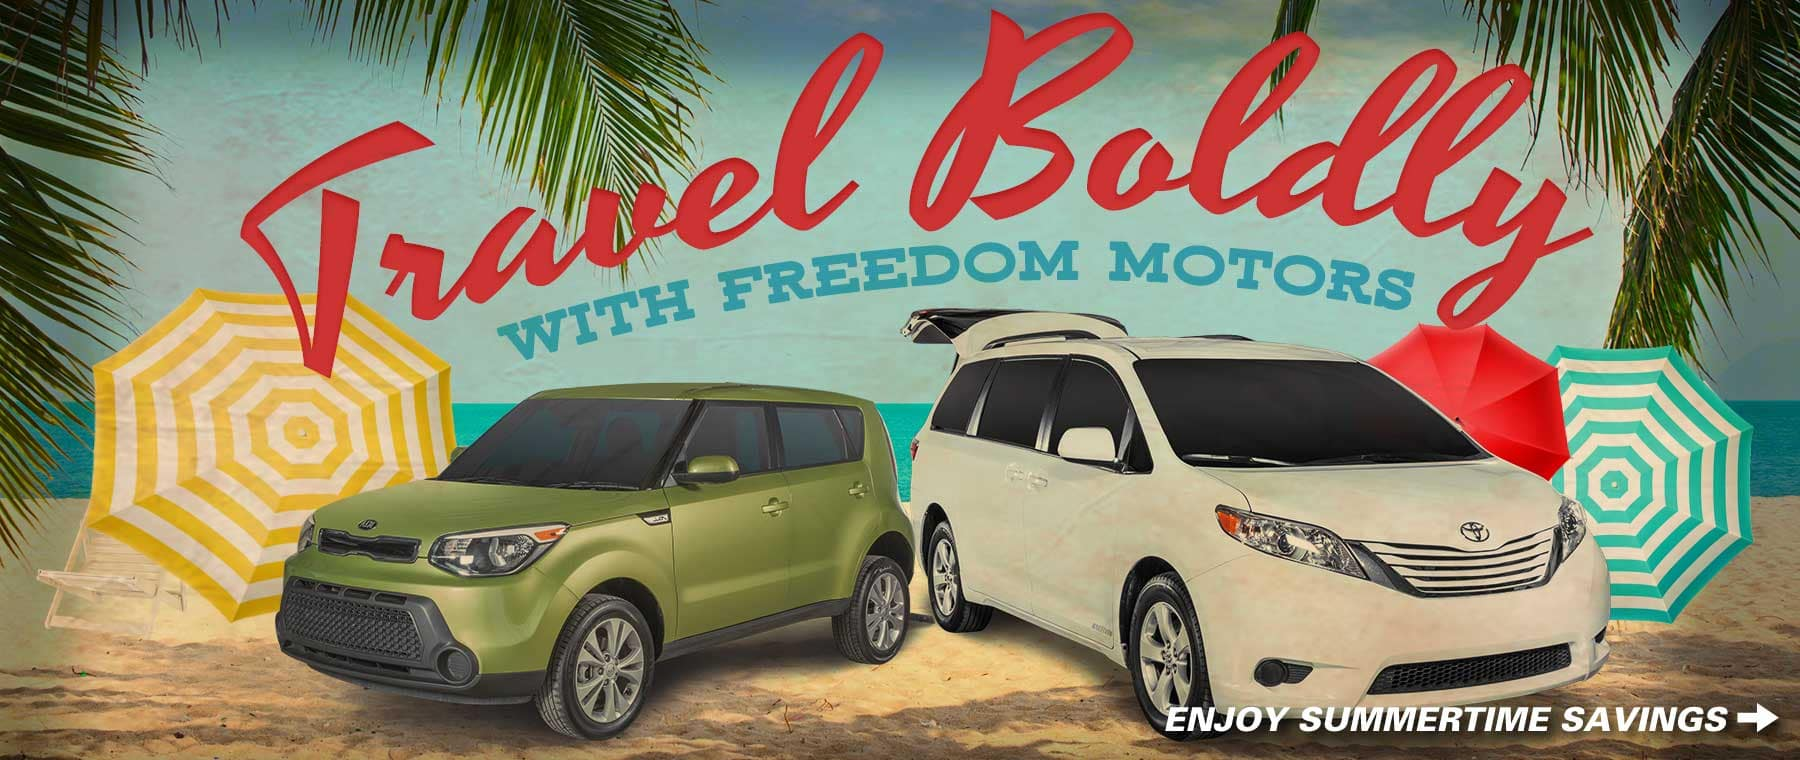 Travel Boldly with Freedom Motors